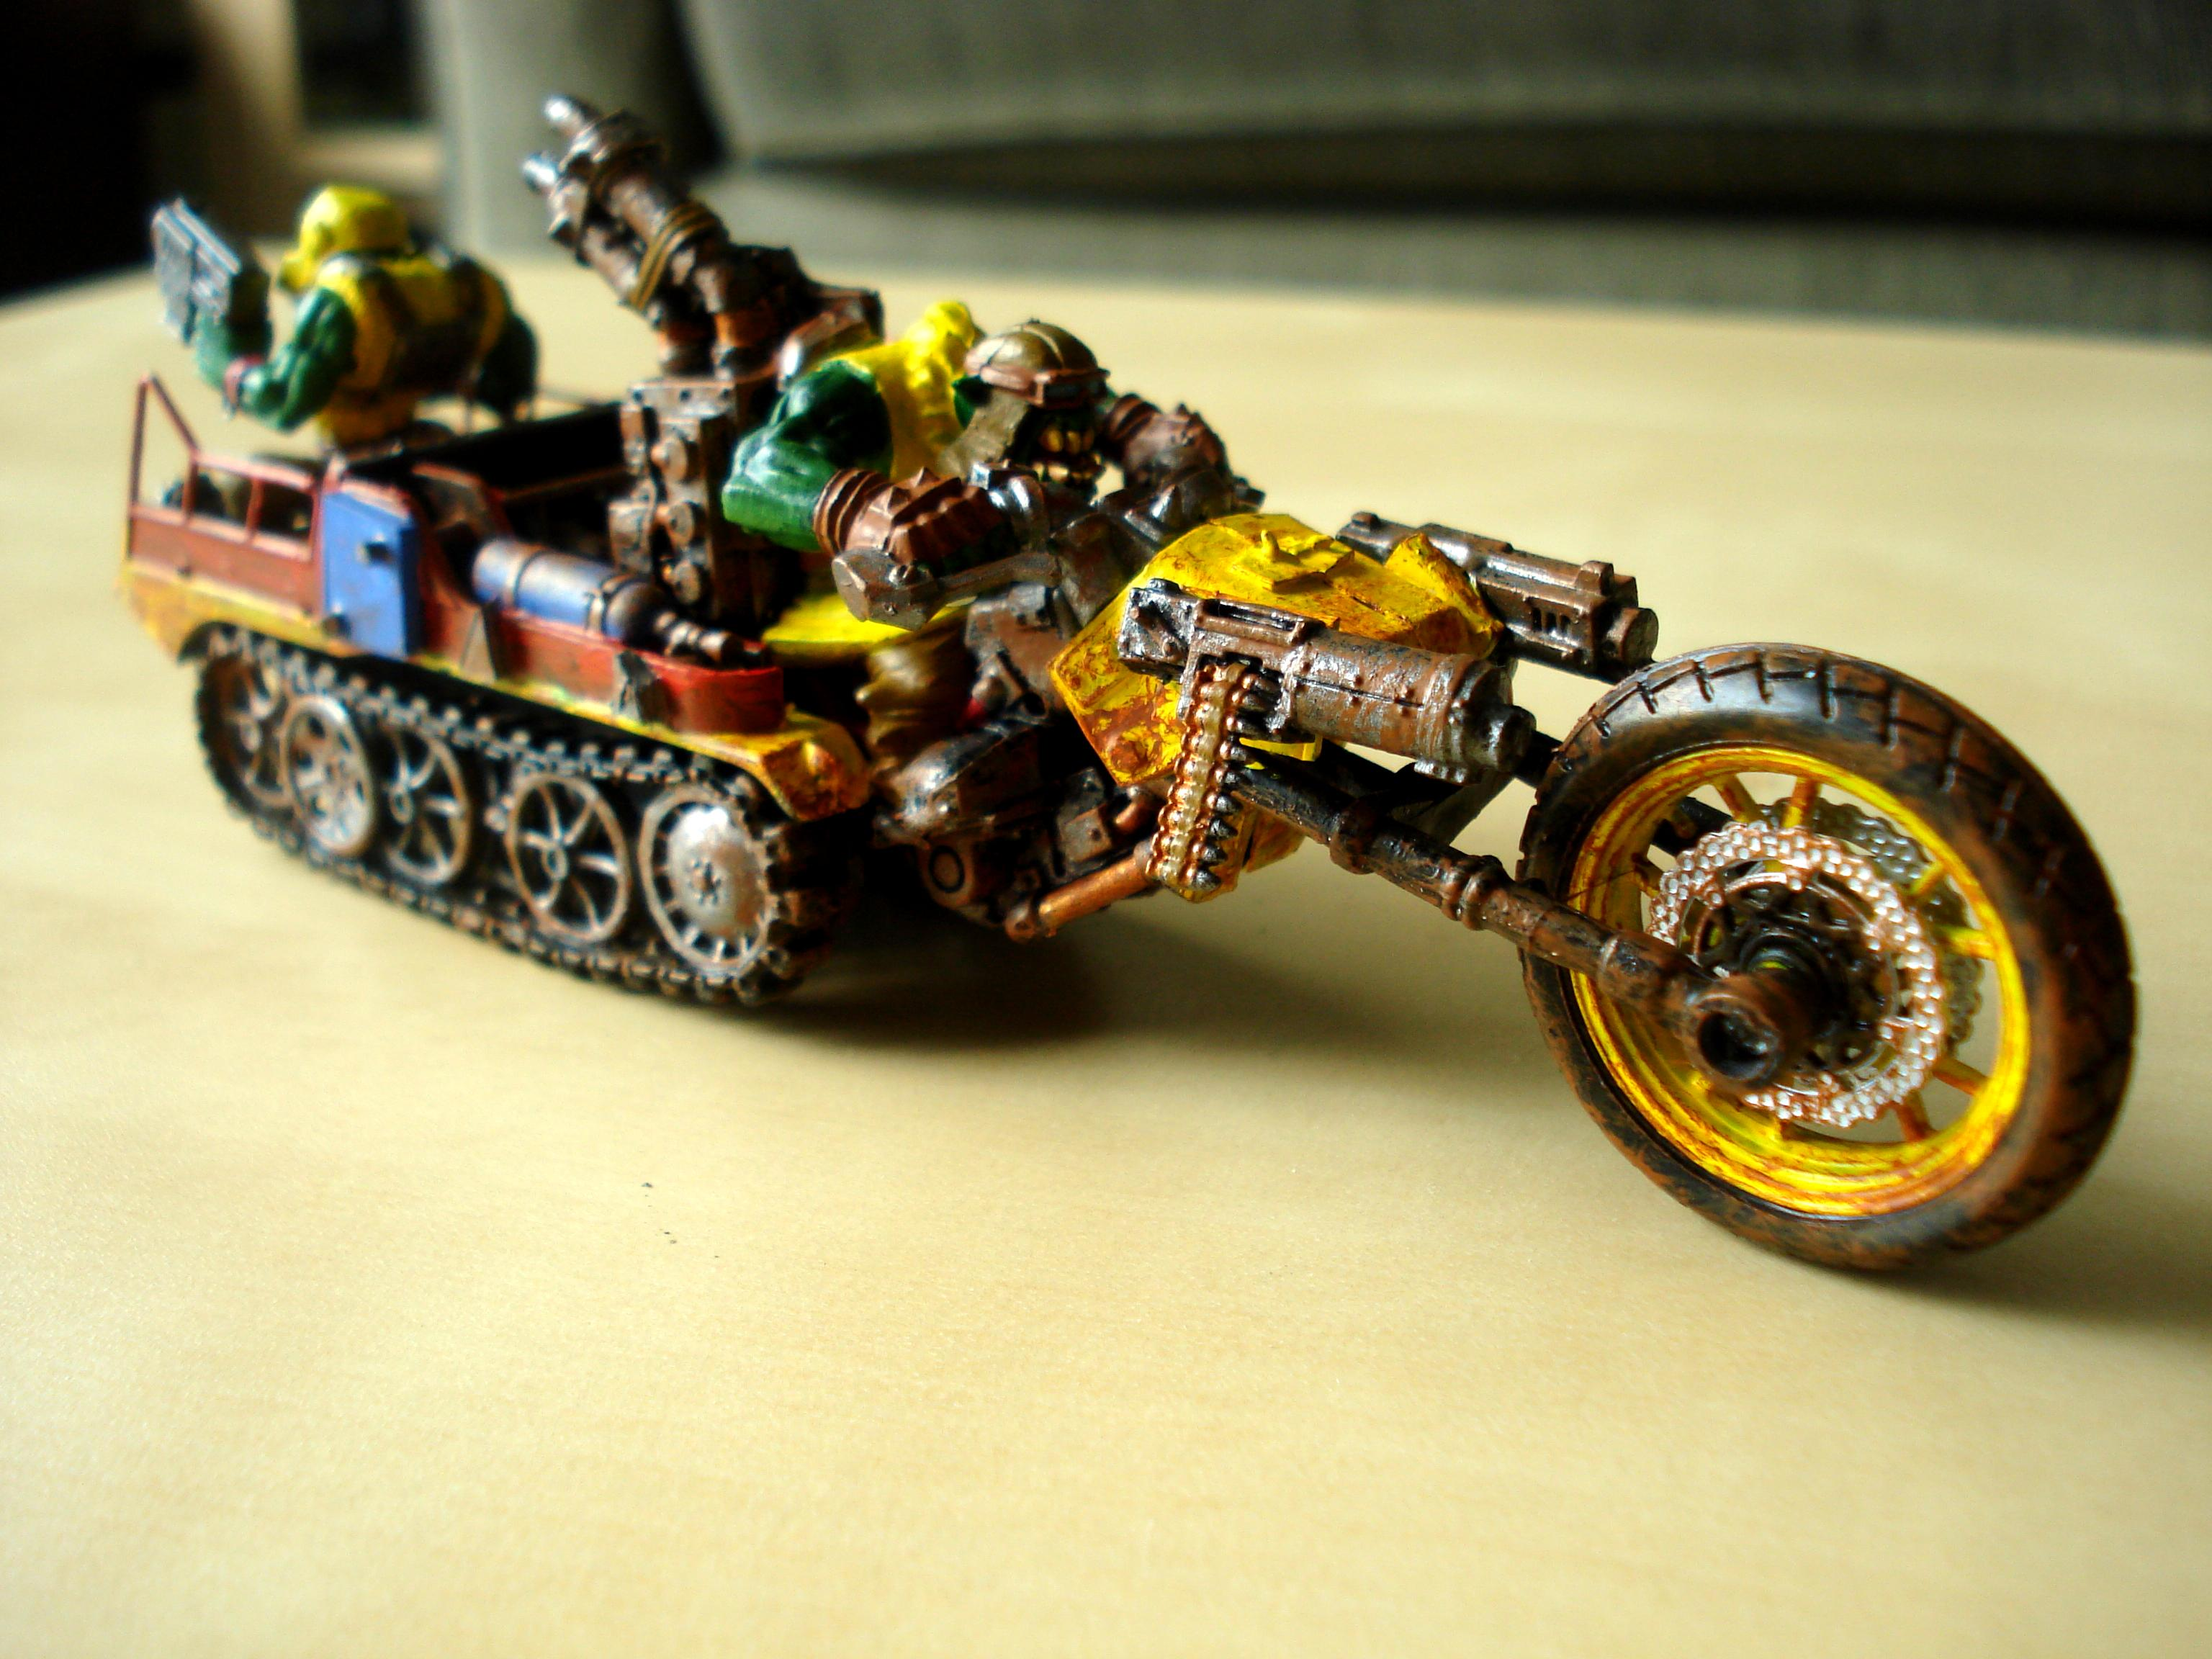 Ork Bike, Ork War Trakk, Scratch Build